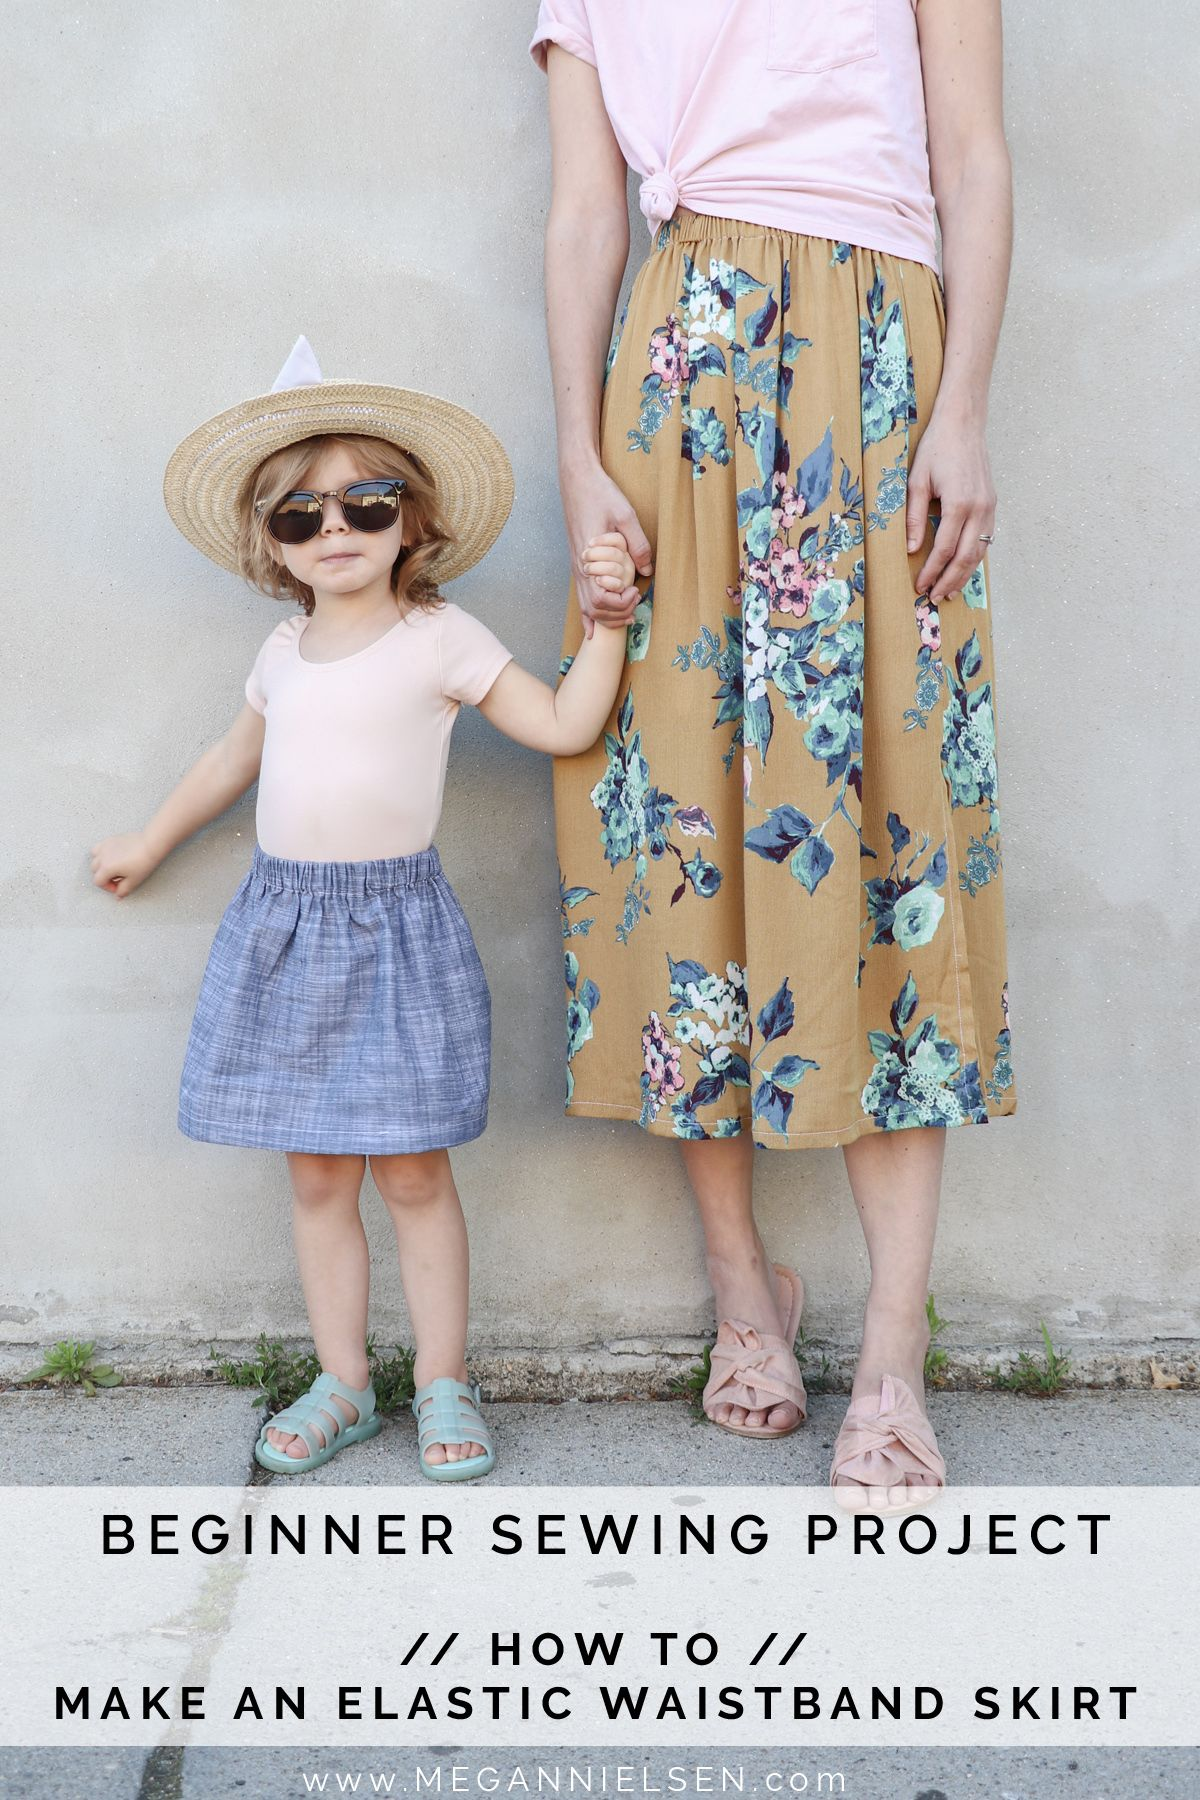 Beginner sewing projects - How to make an elastic waistband skirt — megan nielsen design diary